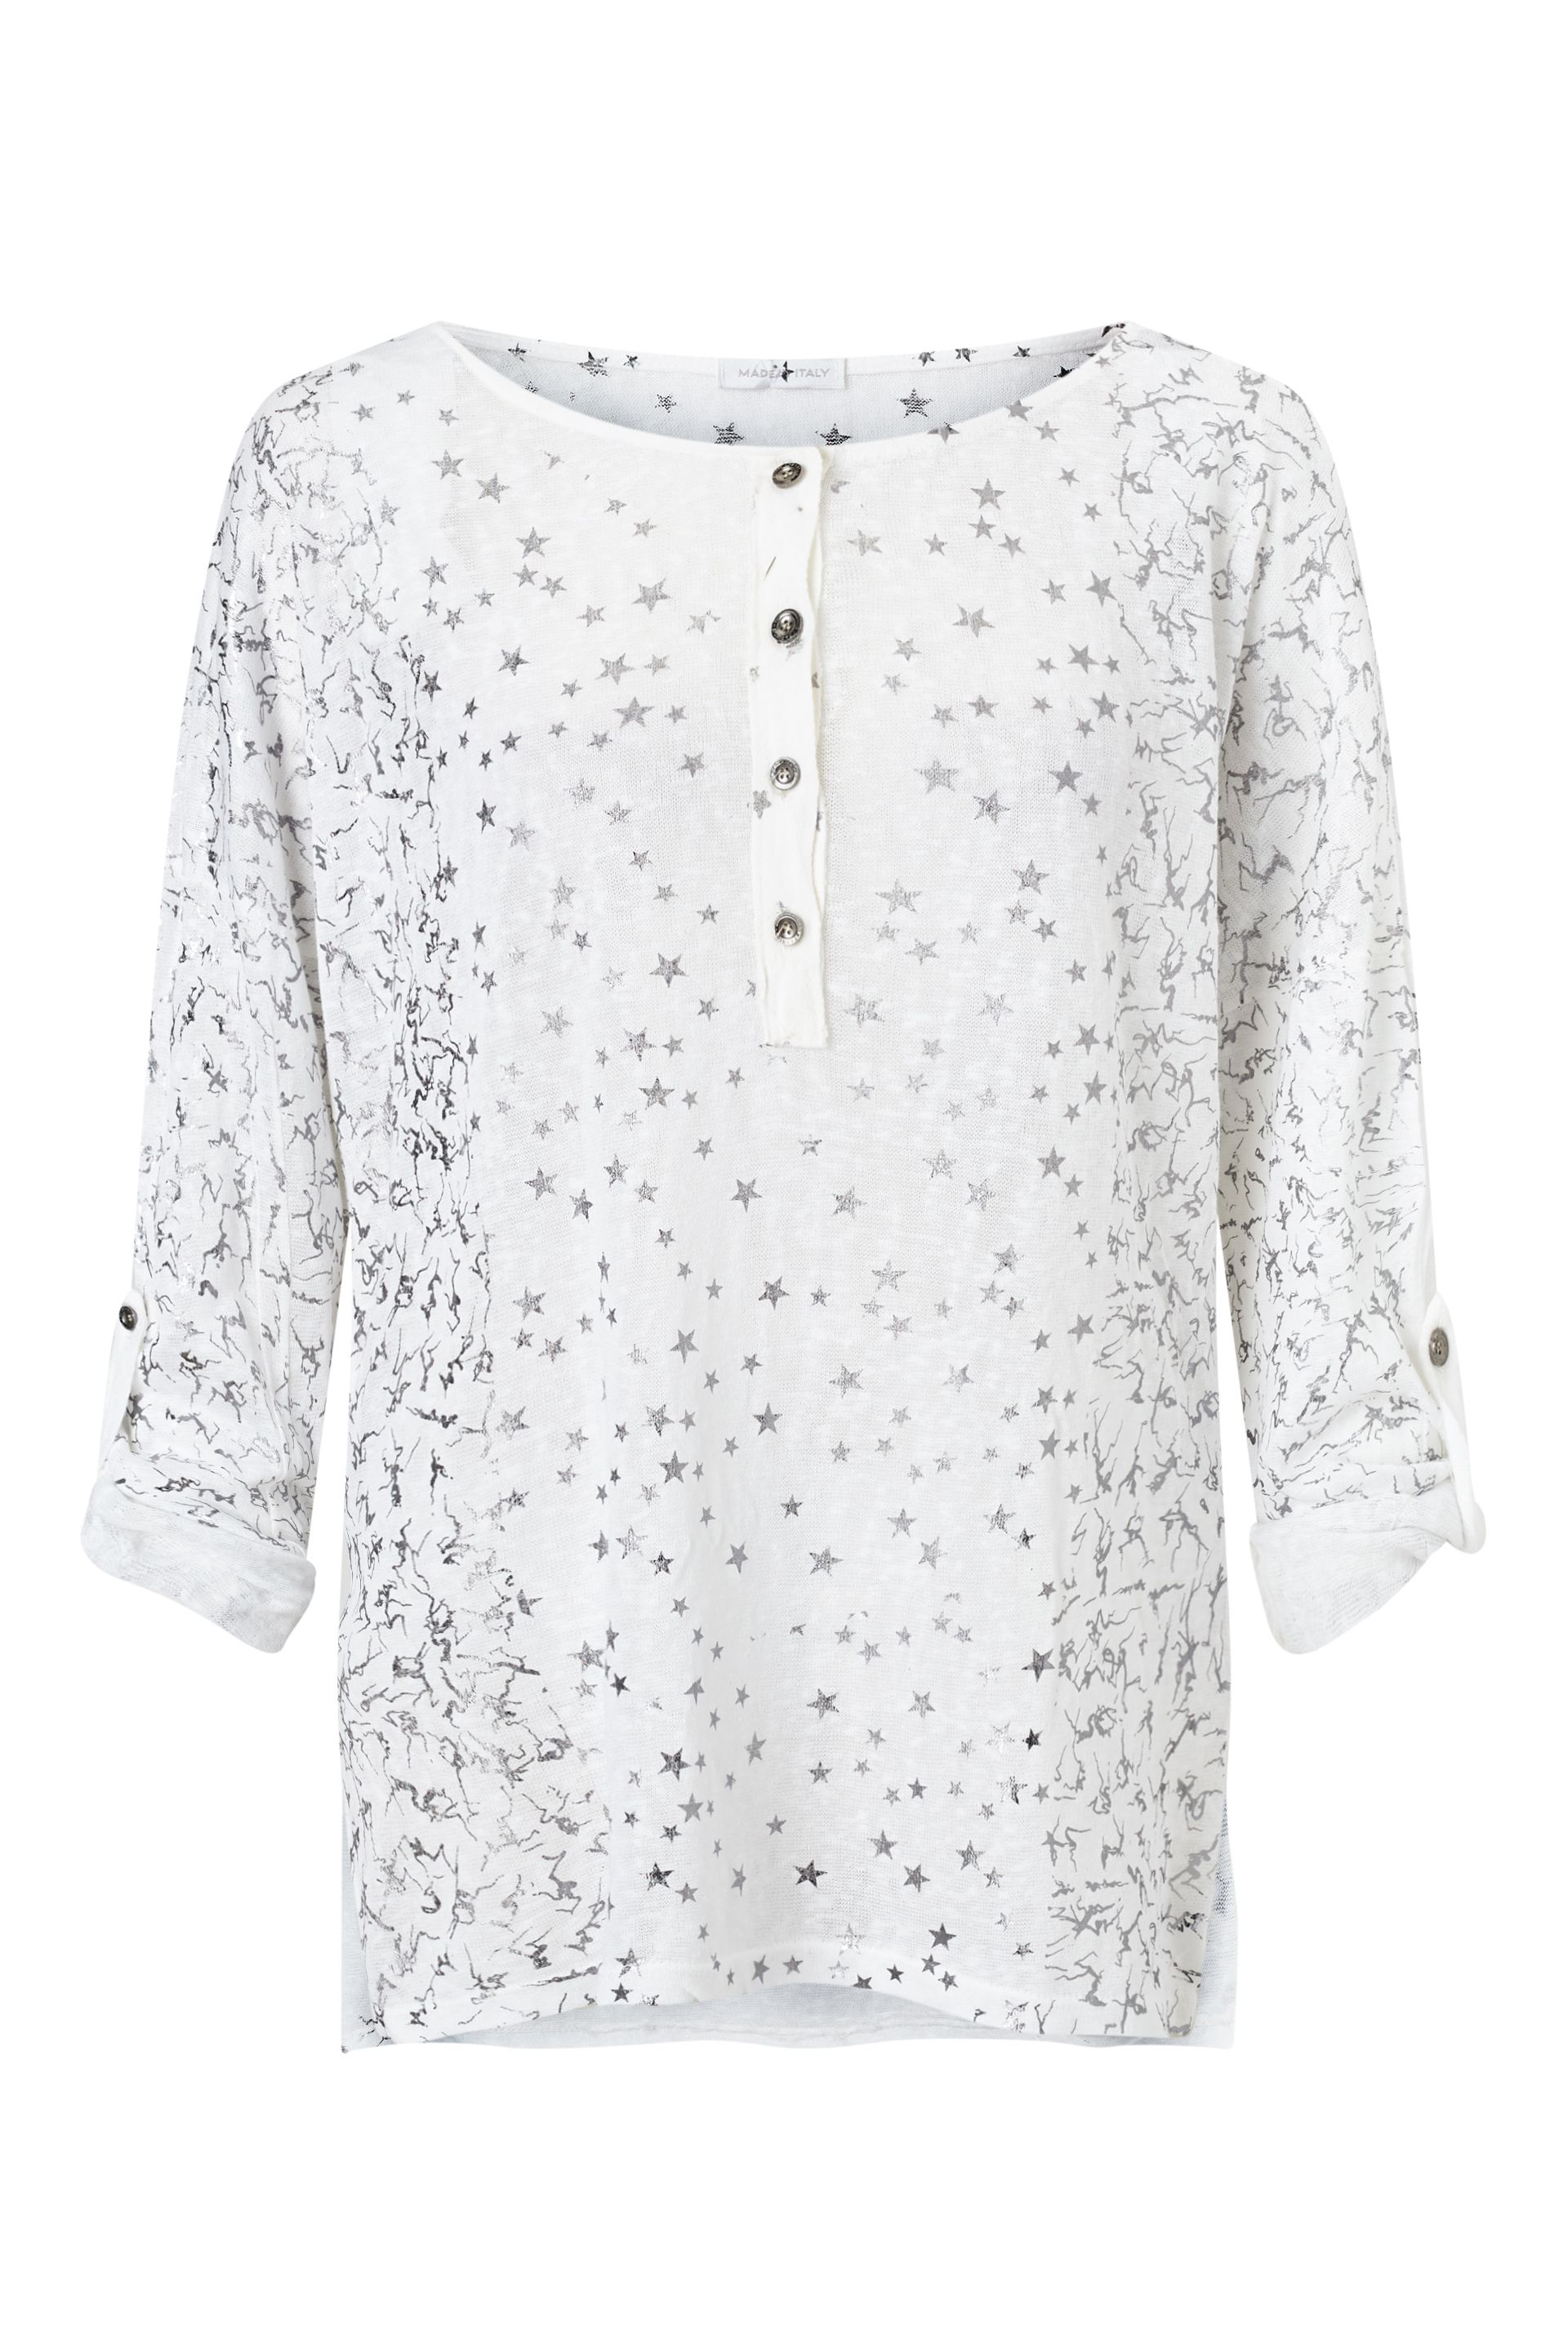 James Lakeland Metallic Print Top, White